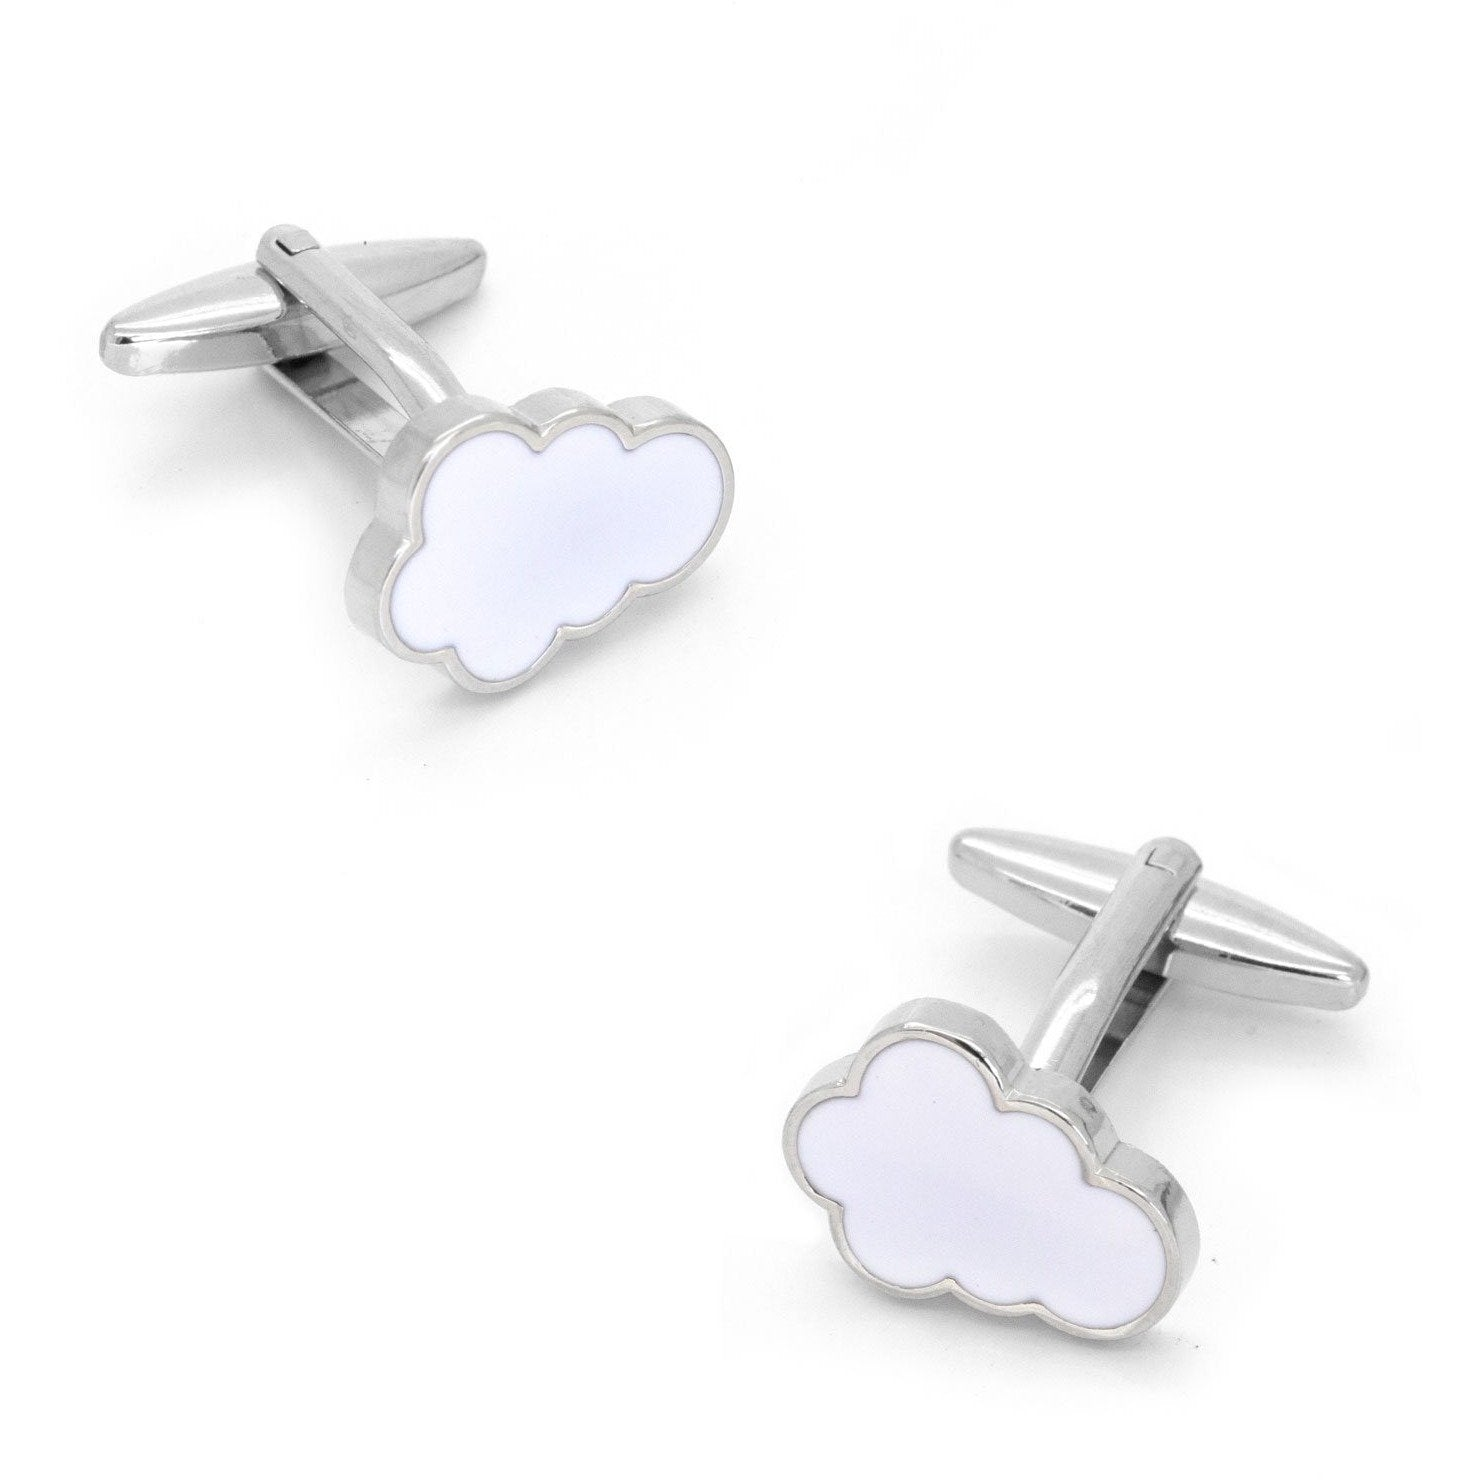 Cloud Cufflinks White, Novelty Cufflinks, Cuffed.com.au, CL8315, $29.00